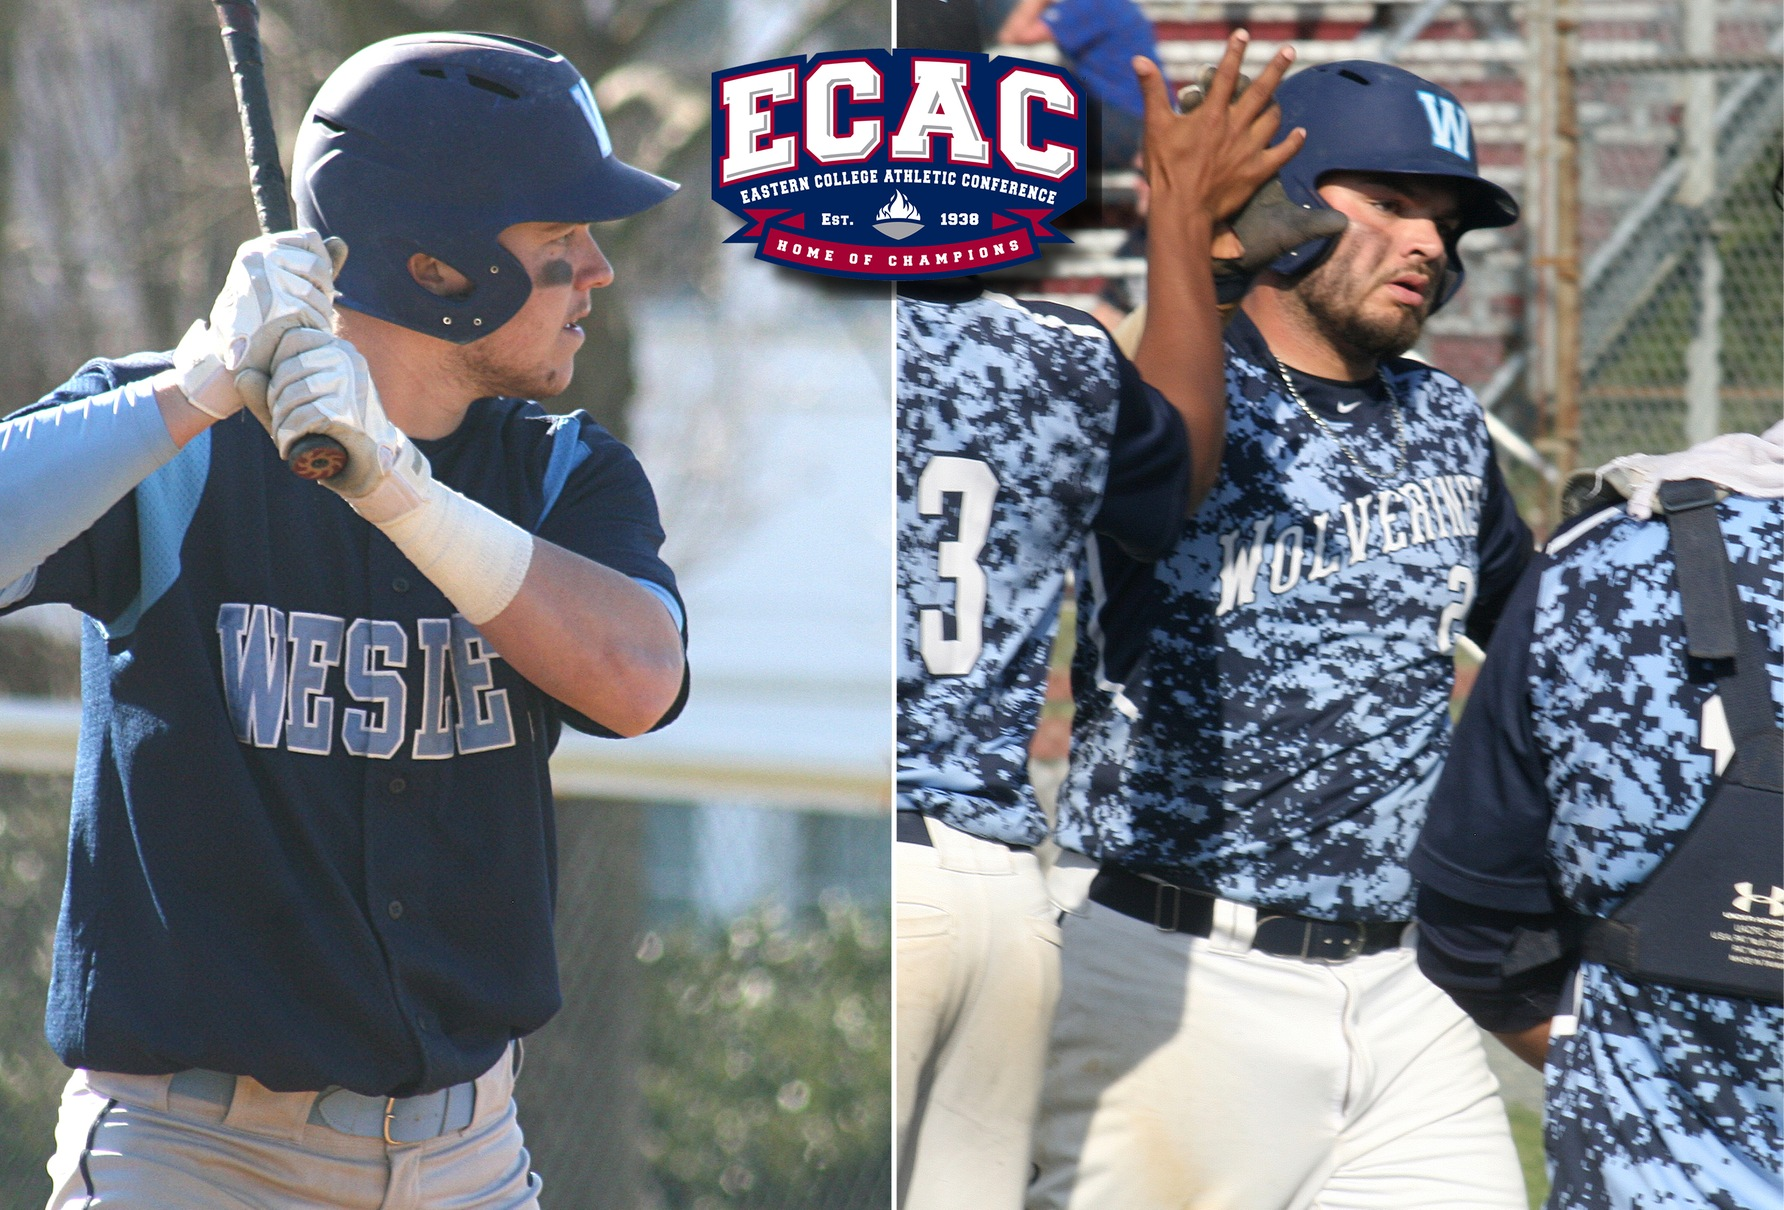 Mears tabbed as ECAC Player of the Year; Mears, Seibert voted All-ECAC